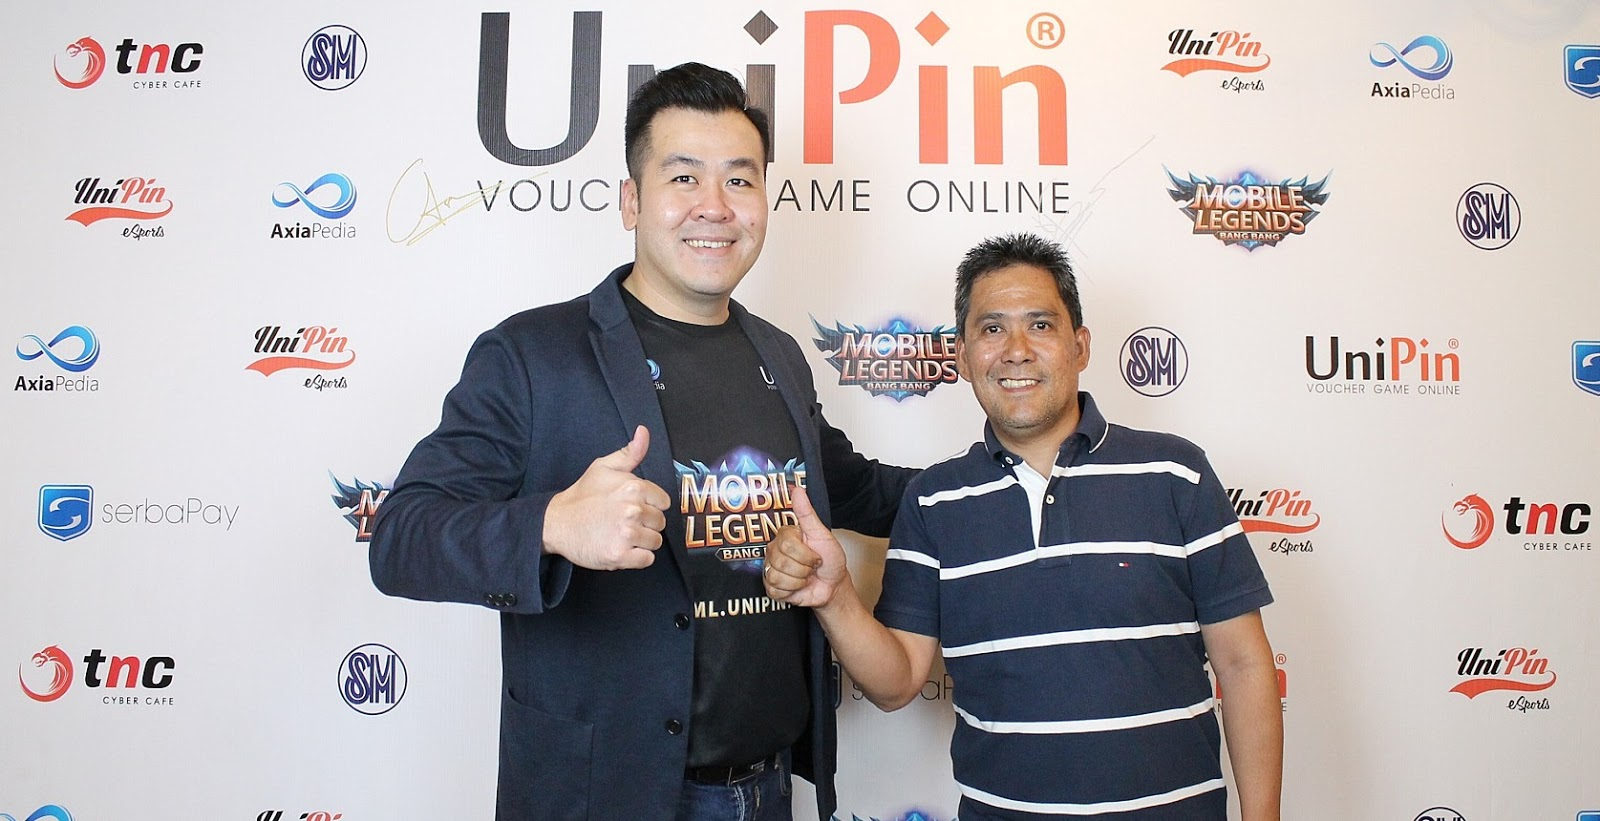 philippines online gaming industry outlook Our philippines correspondent bob shead discusses the investment opportunities in the philippine online gaming industry read more in this op-ed the philippines is an interesting and relatively new market for online gambling there are two distinct regions in the country, for gambling purposes.